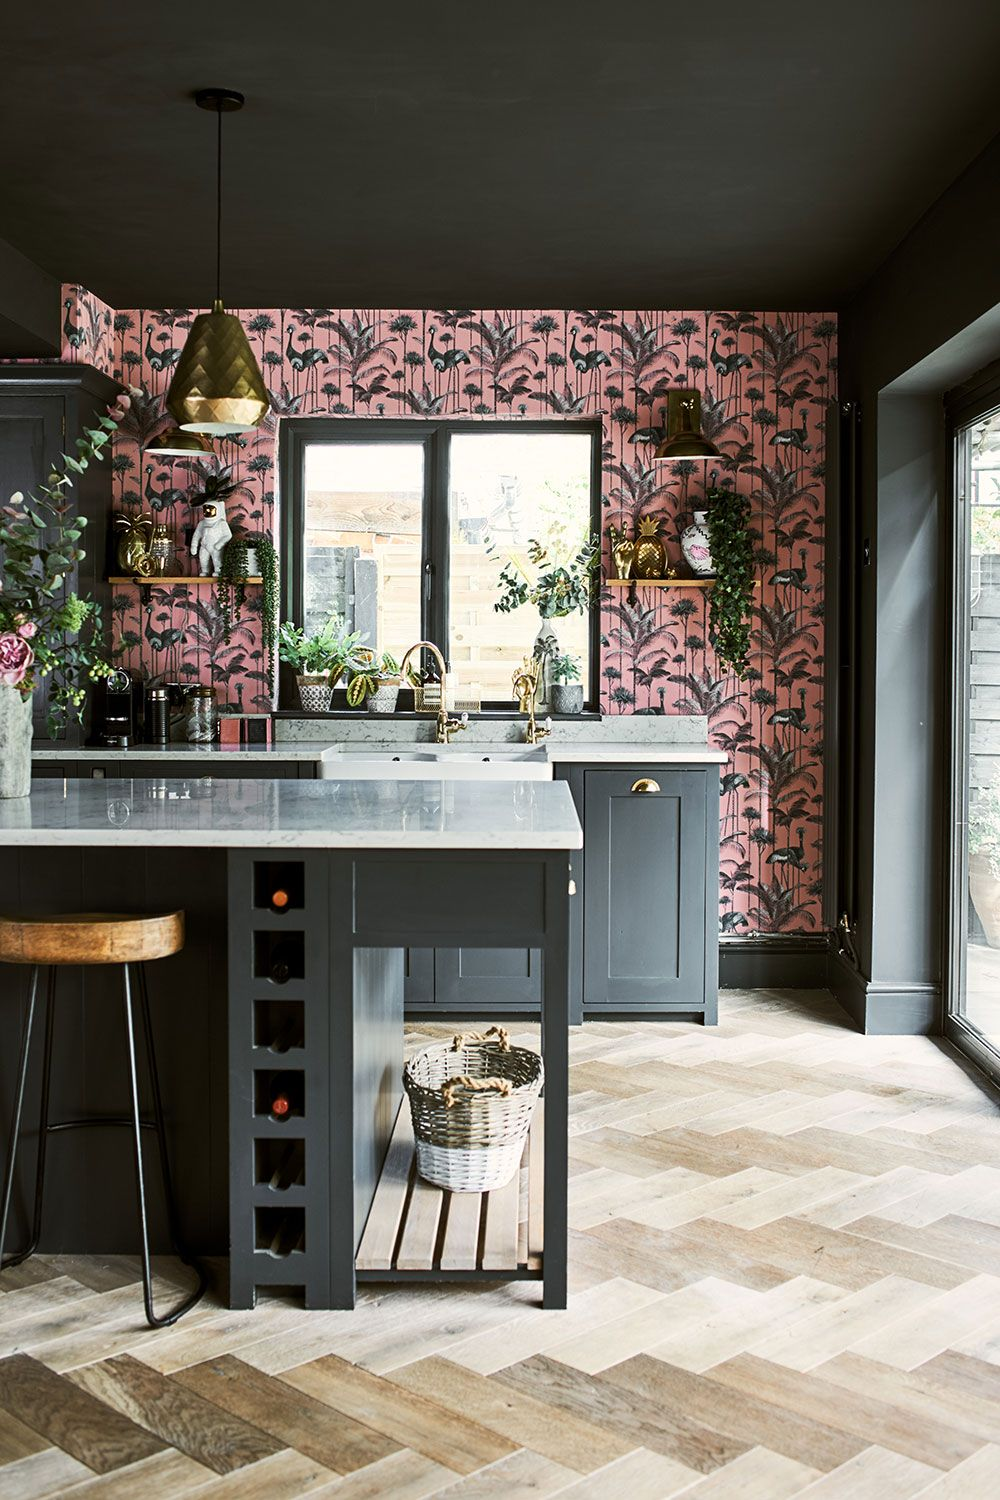 Bold decor for traditional English kitchen by Neptune 〛 ◾ Фото